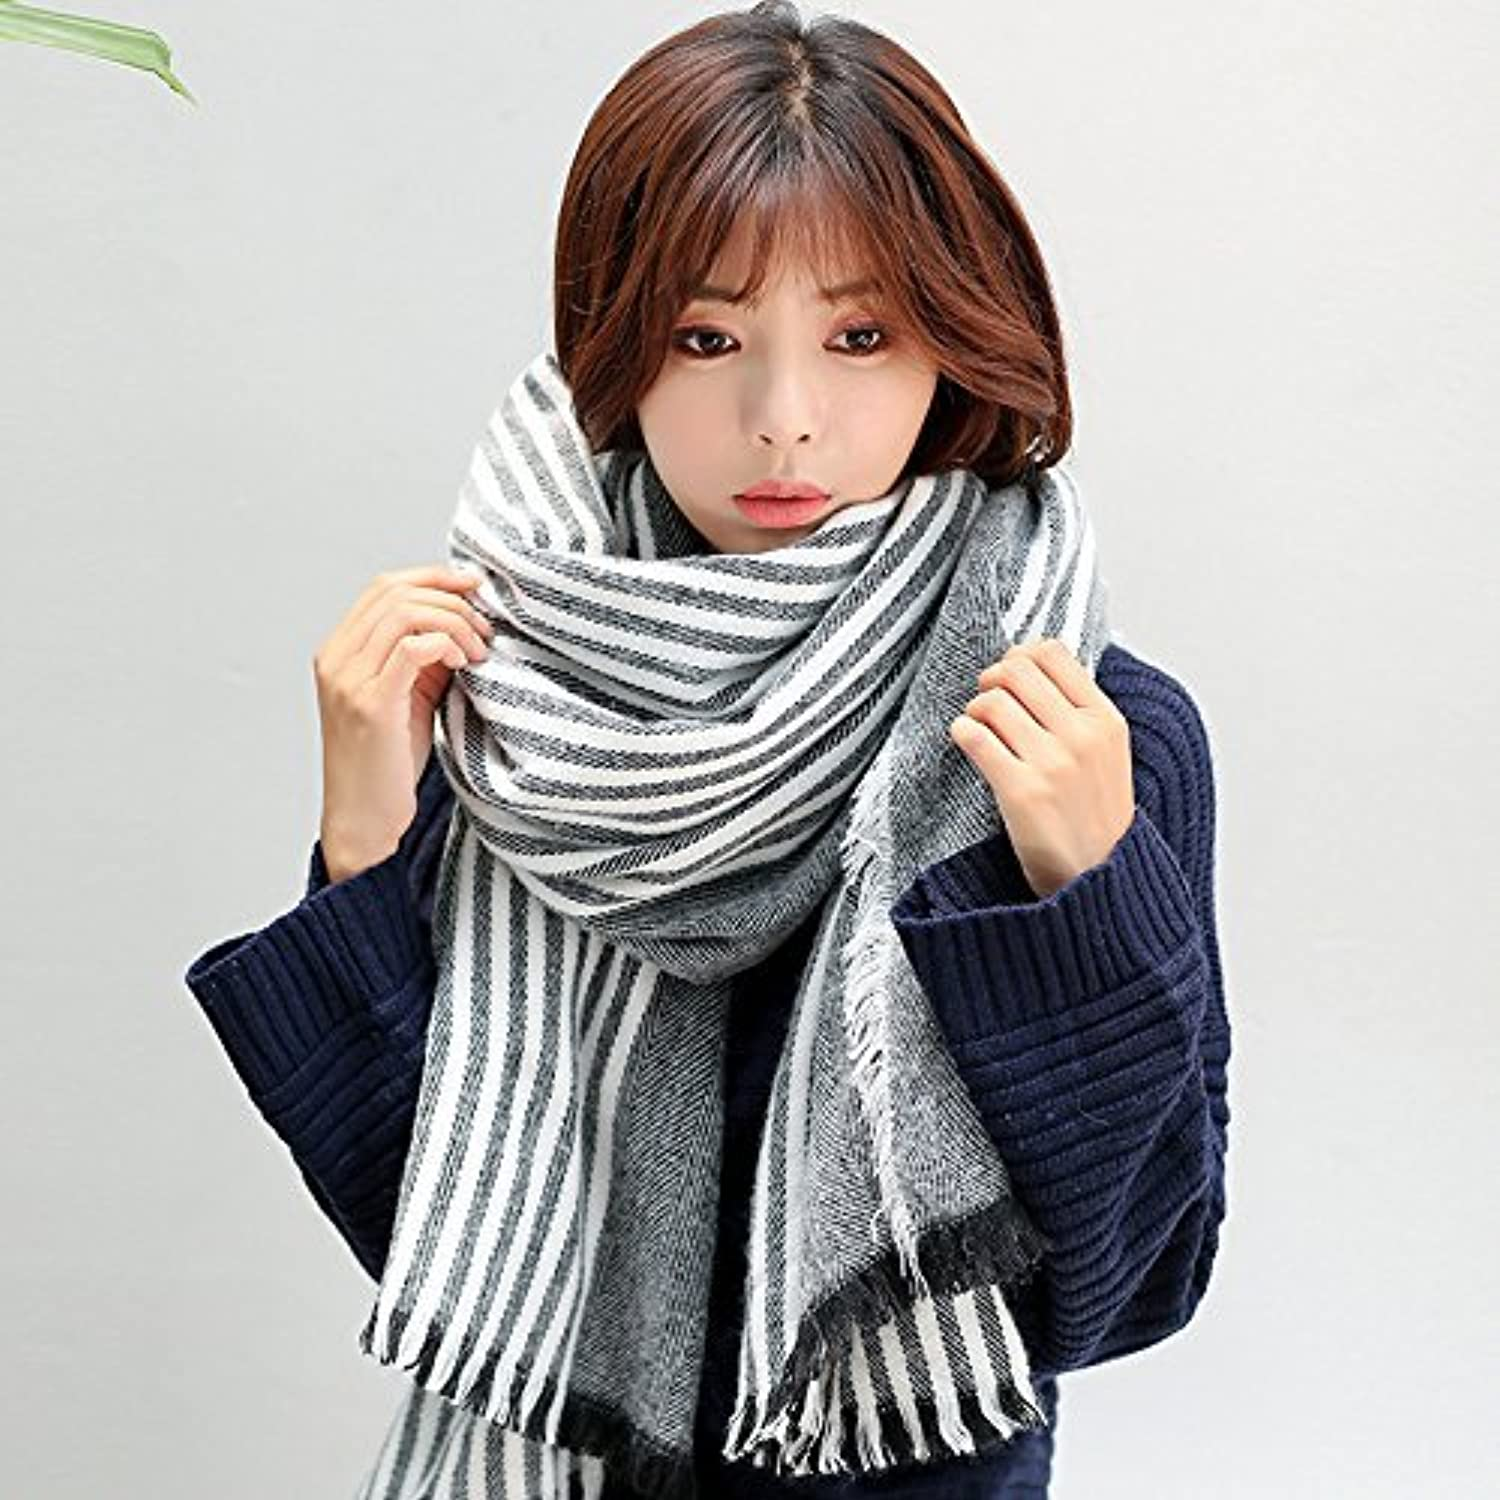 SED ScarfFemale Striped Scarf Shawl Scarf Warm in Winter Imitation Cashmere Scarf Female Autumn and Winter Korean Students Knitted Shawl Long